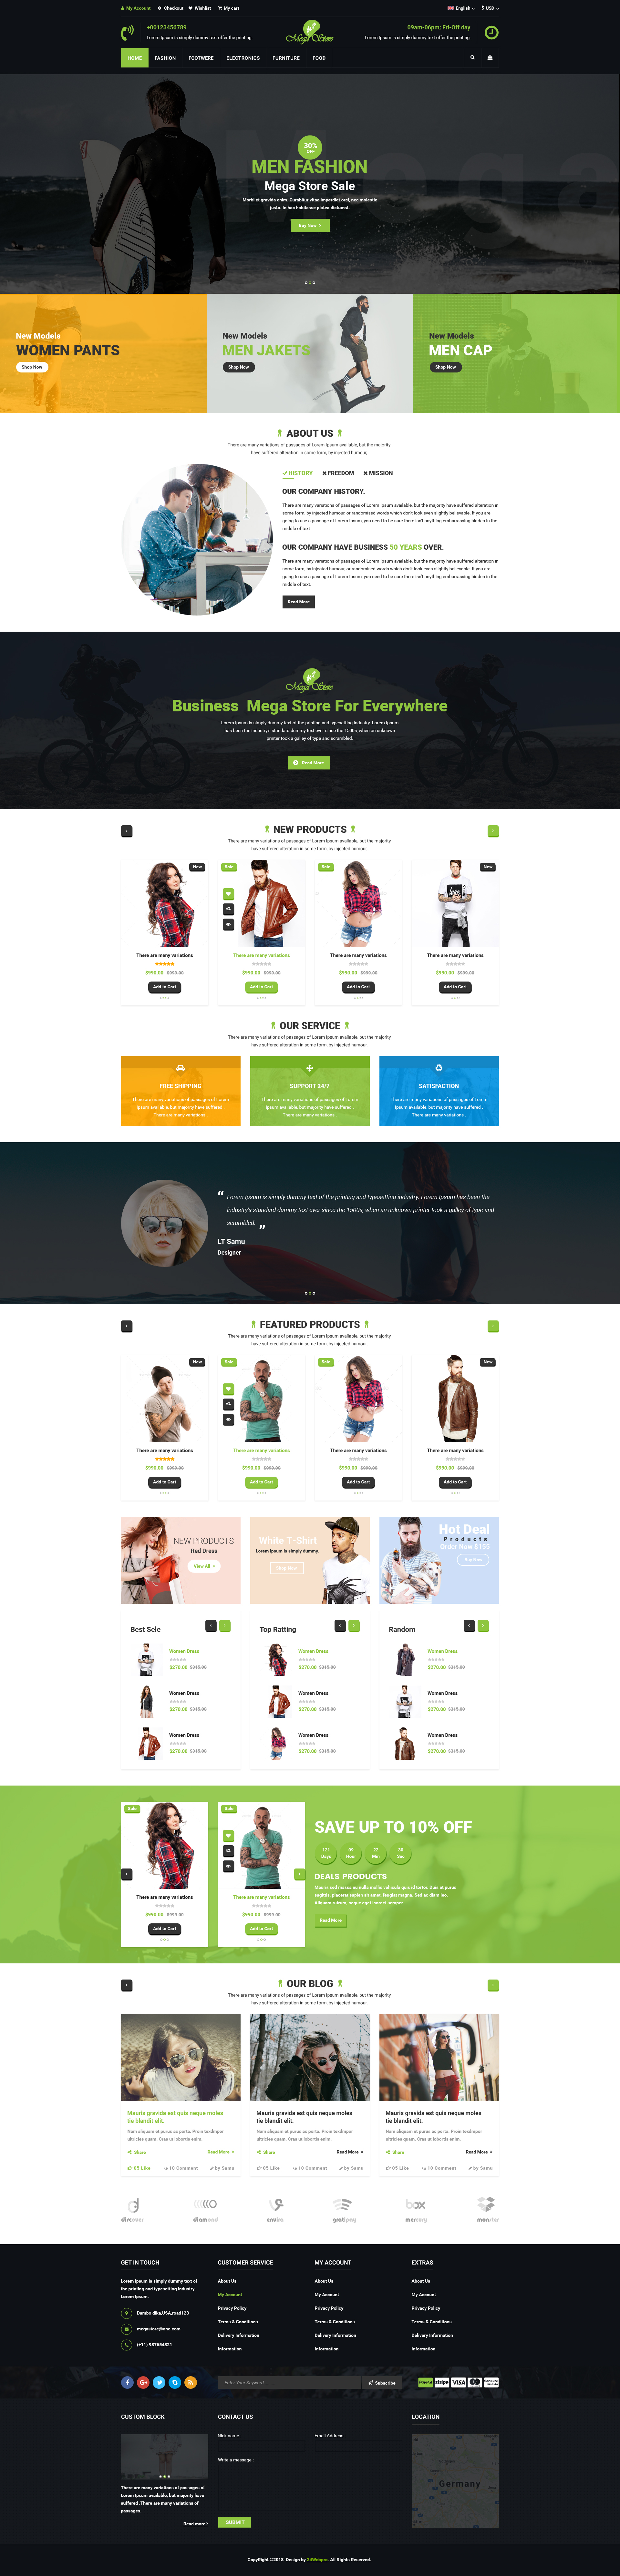 Mega store e commerce psd template by 24webpro themeforest img01previewg cheaphphosting Images